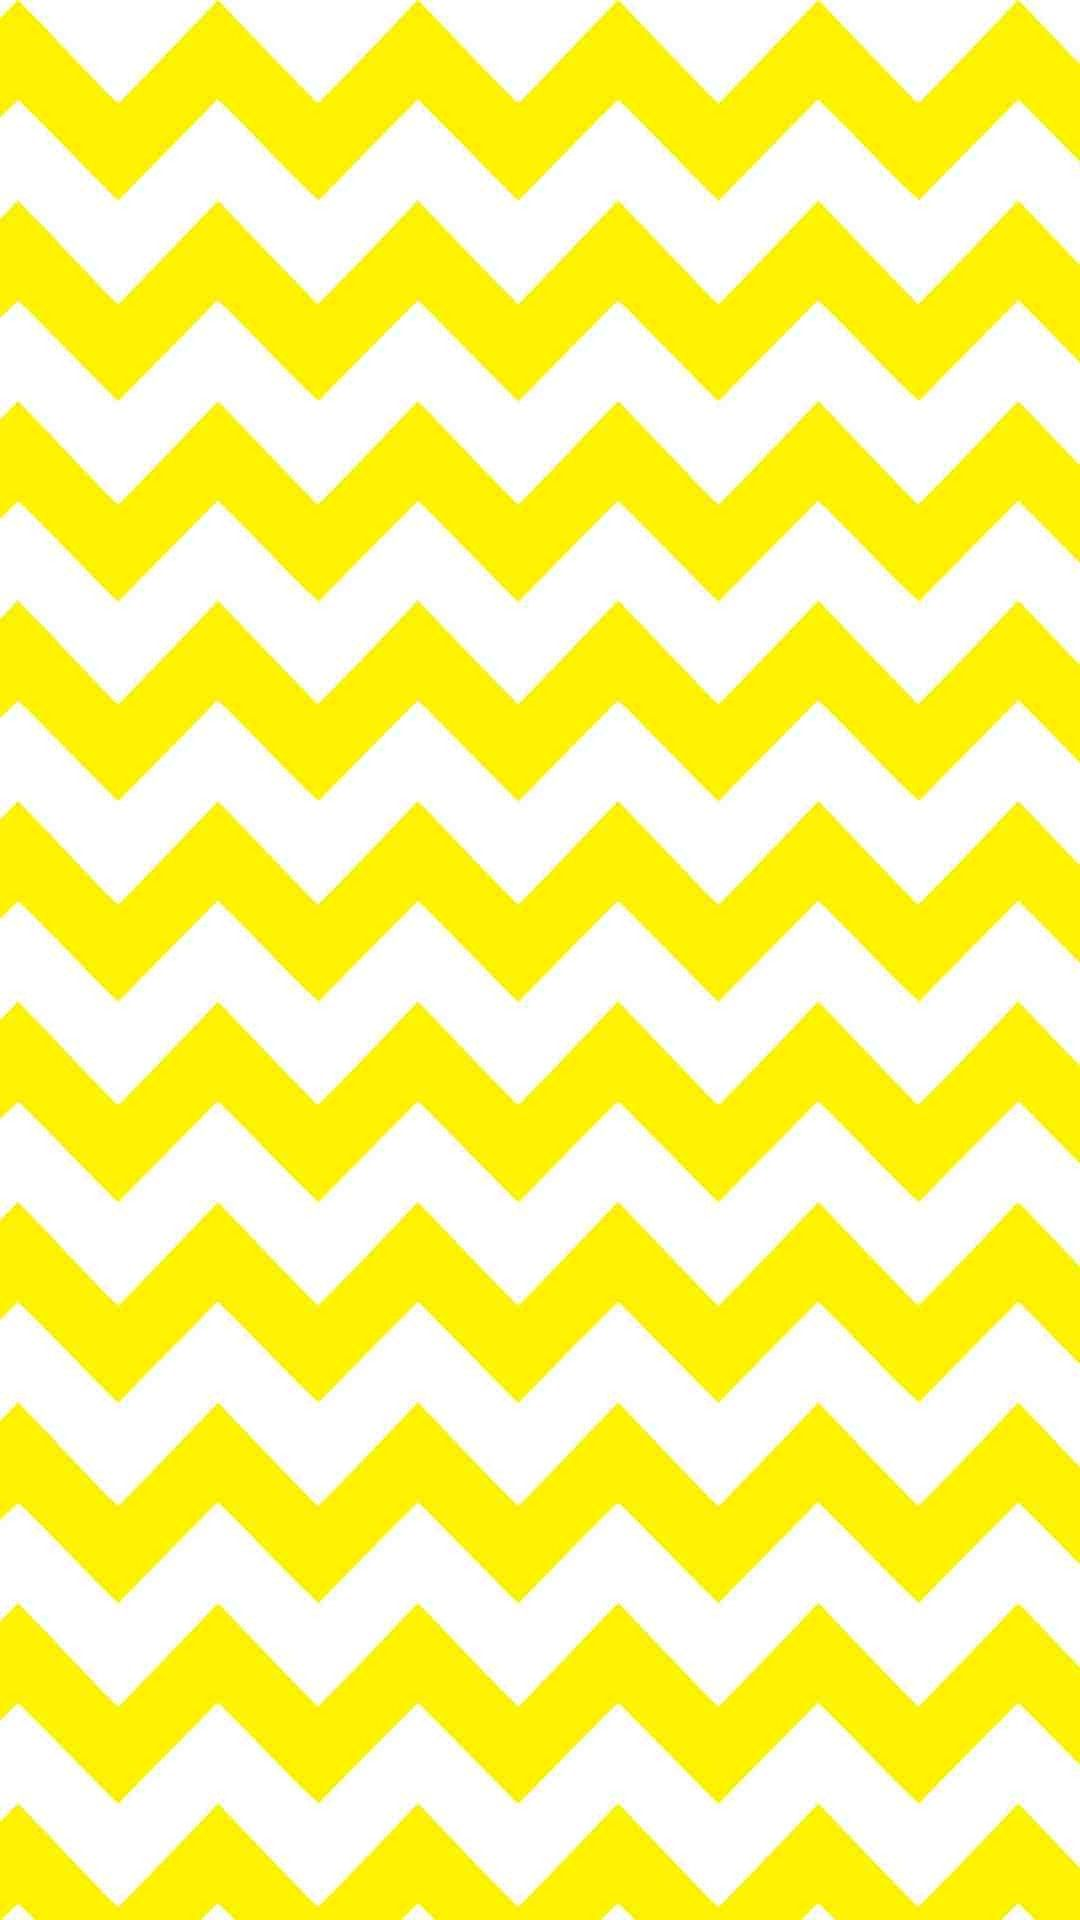 yellow and white chevron iphone 6 plus wallpaper - zigzag pattern